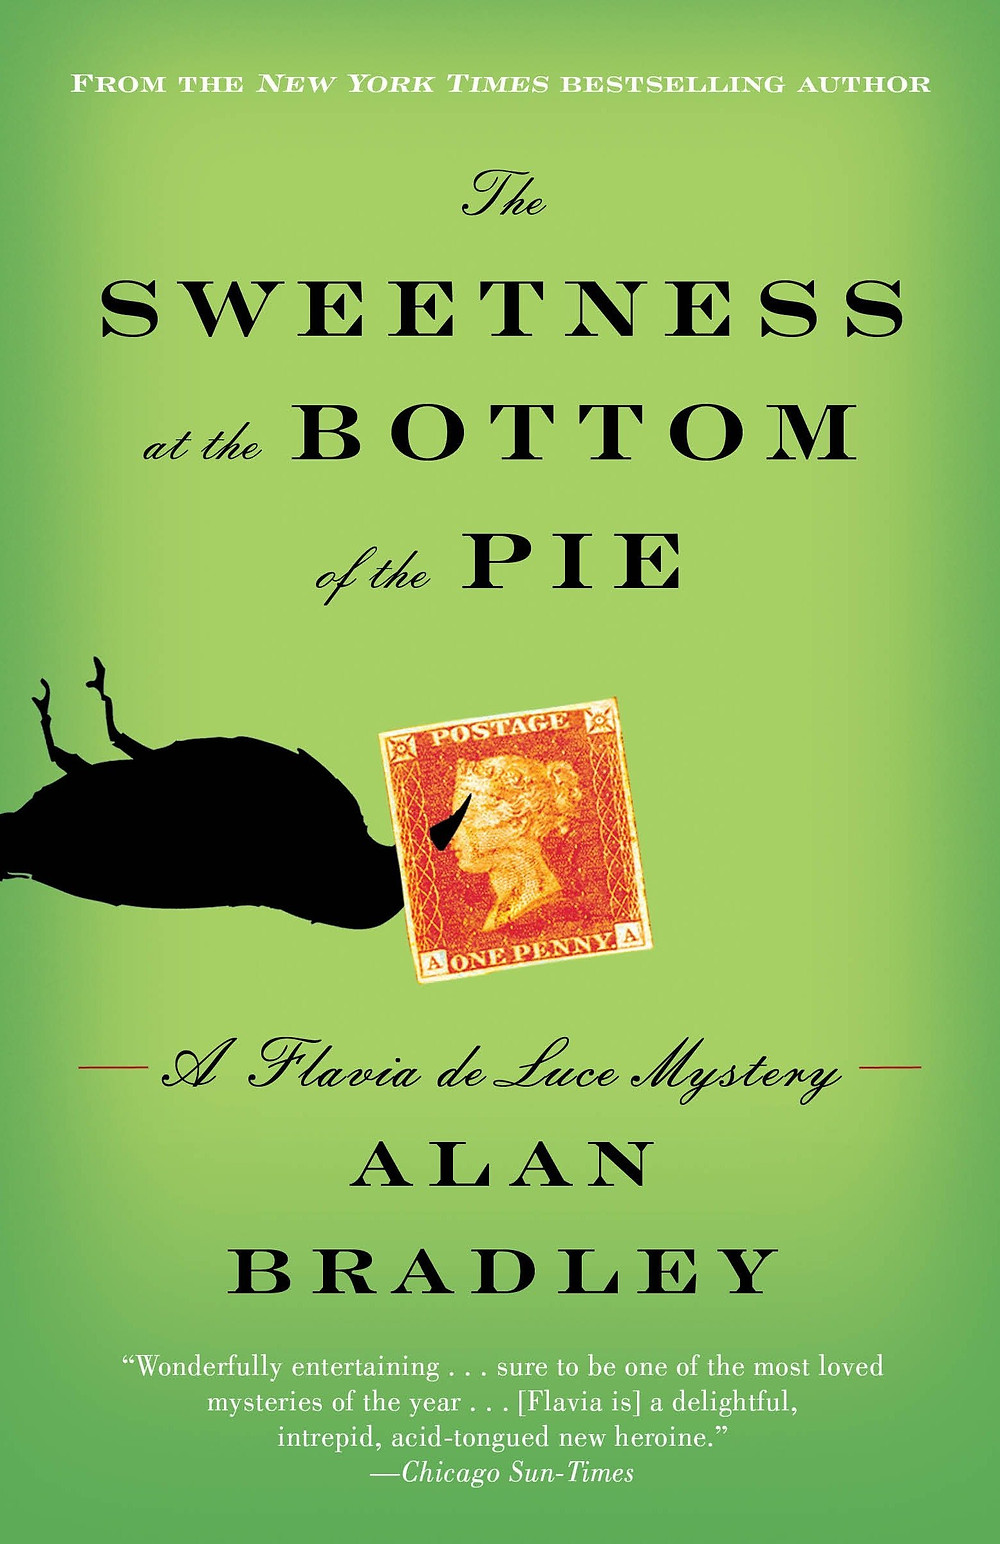 Book Review of The Sweetness at the Bottom of the Pie by Alan Bradley